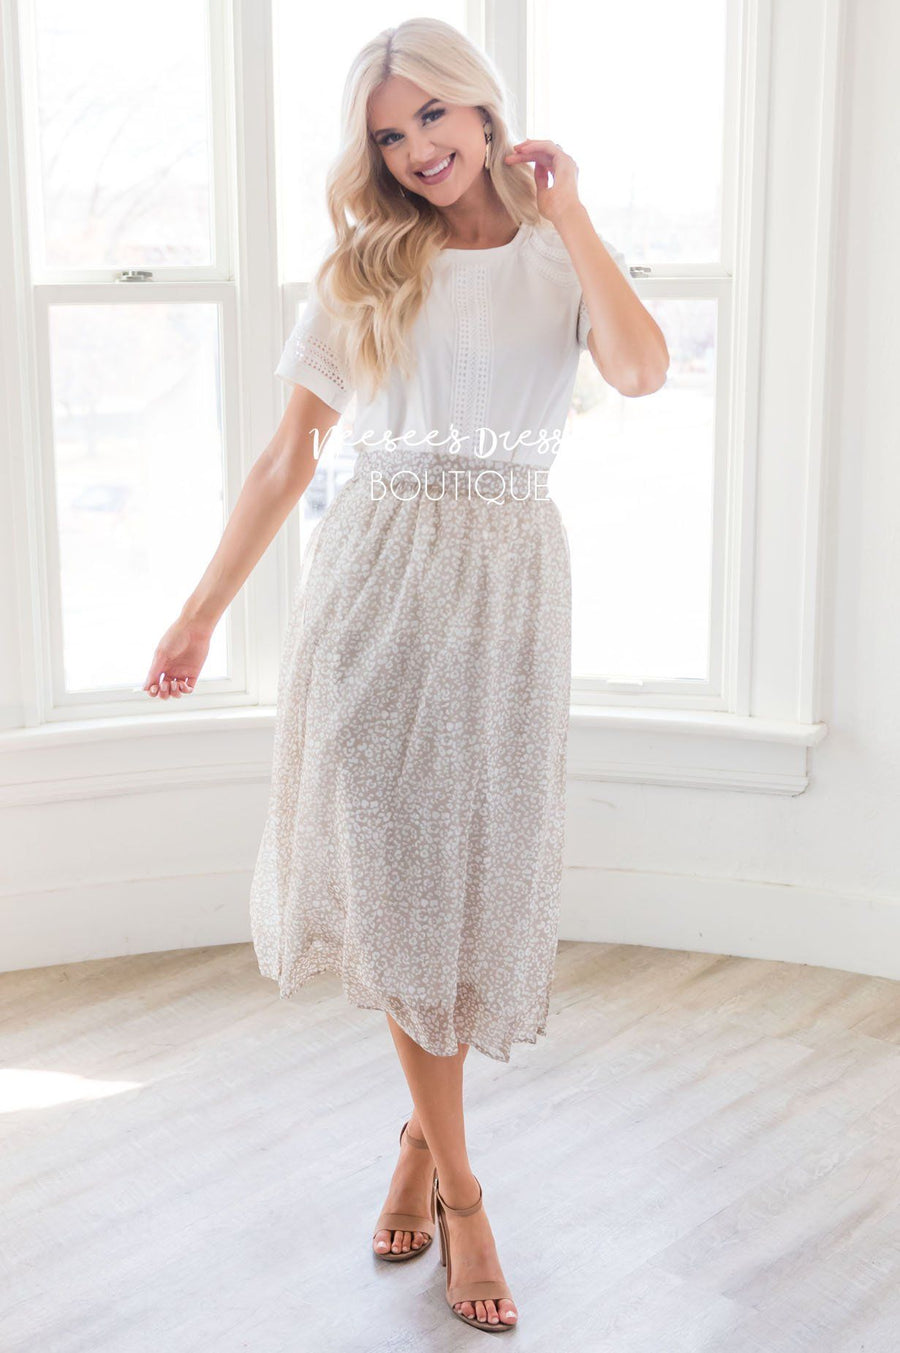 Spring is All Around Chiffon Skirt